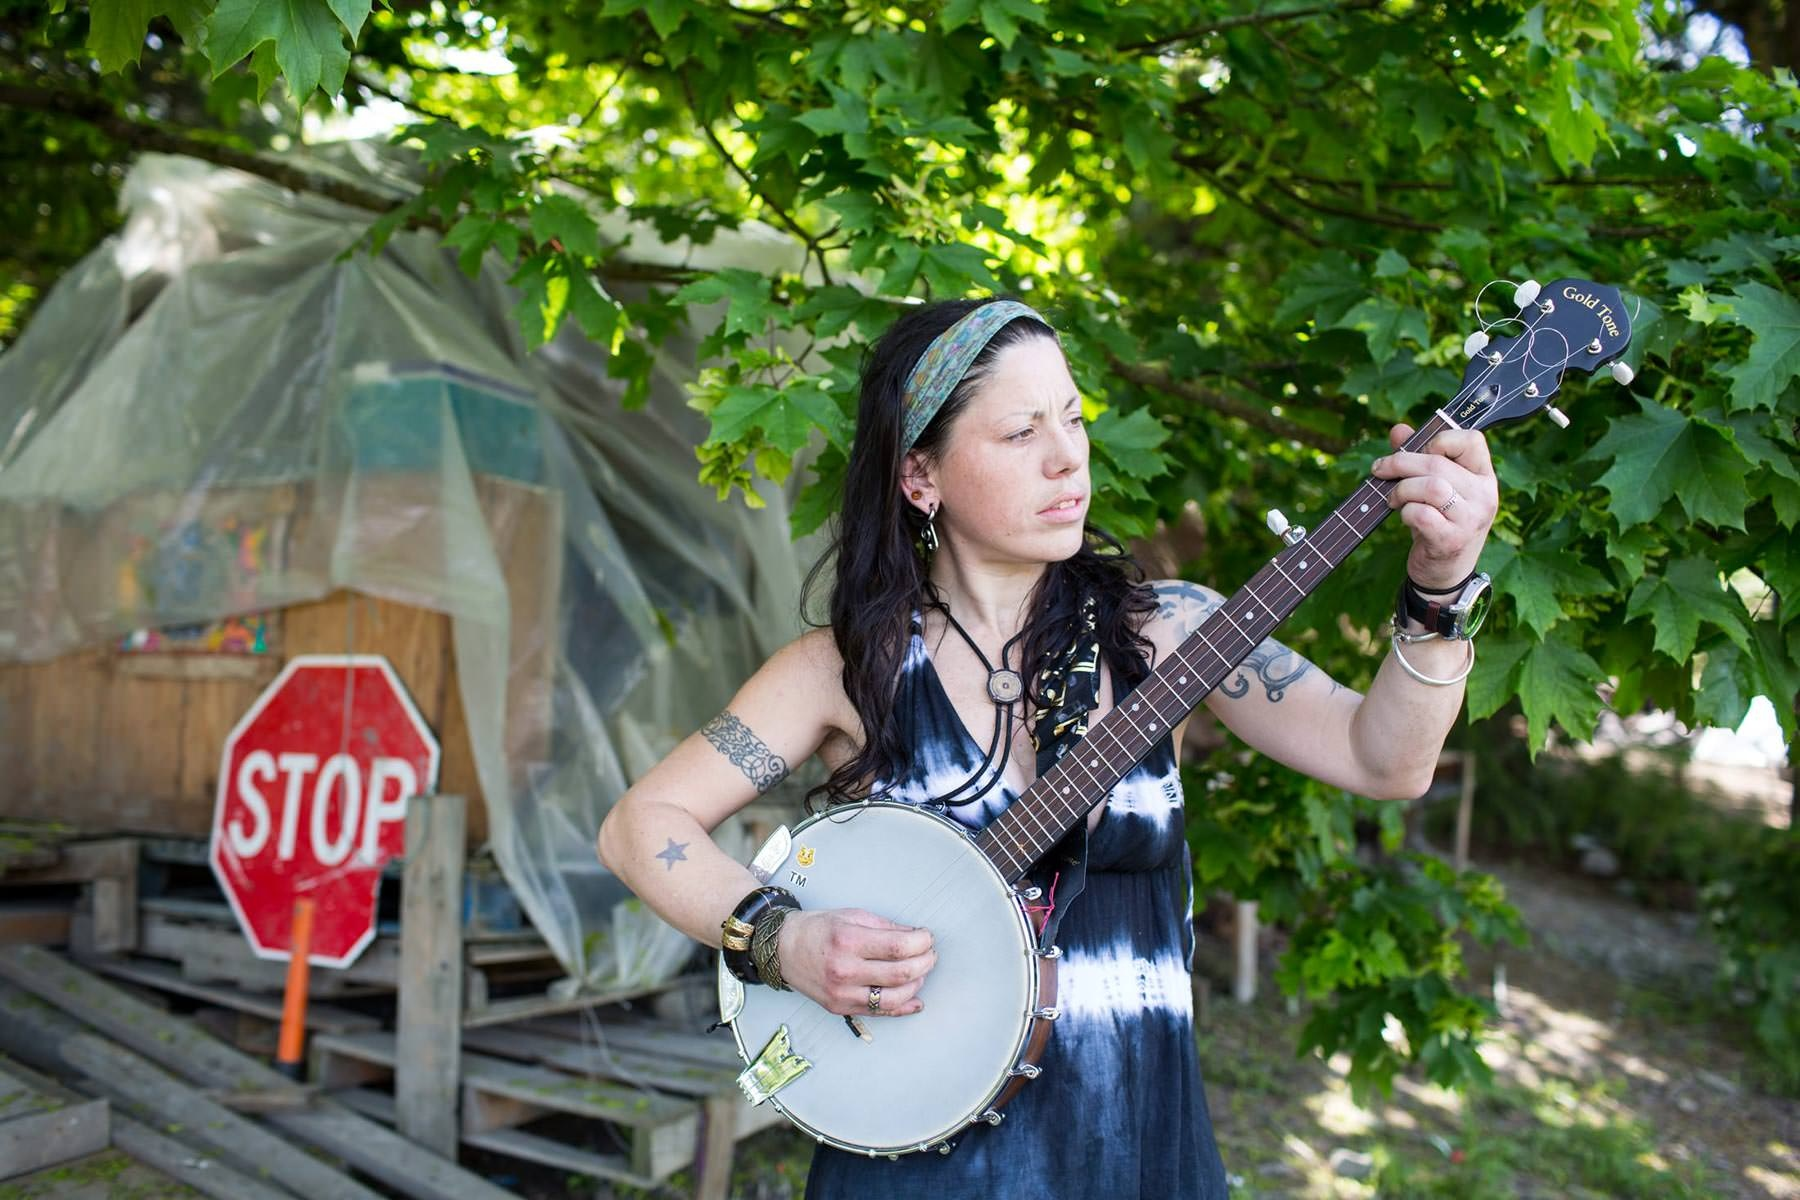 Paige Conca, 35, plays the banjo at her camp on the side of I-90 in Seattle, Washington. She has been homeless for four years. 'Homeless women on their first night on the streets'  for the Guardian